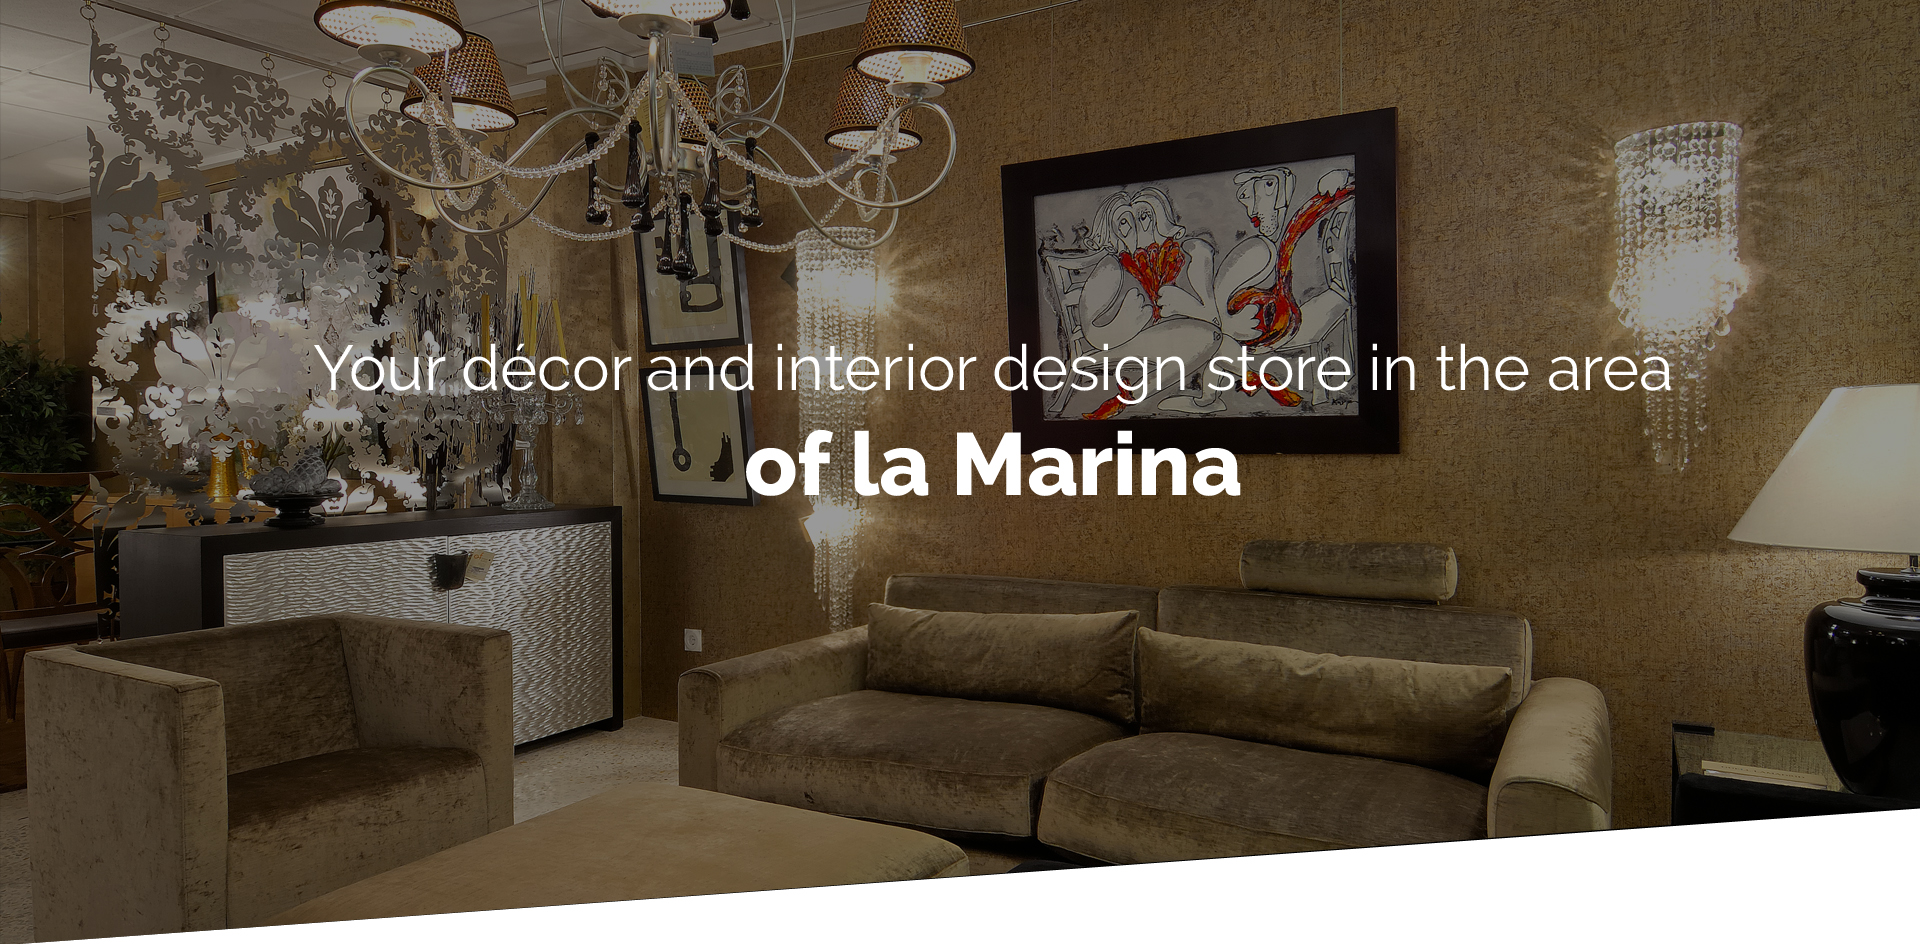 Your décor and interior store in the area of la Marina.